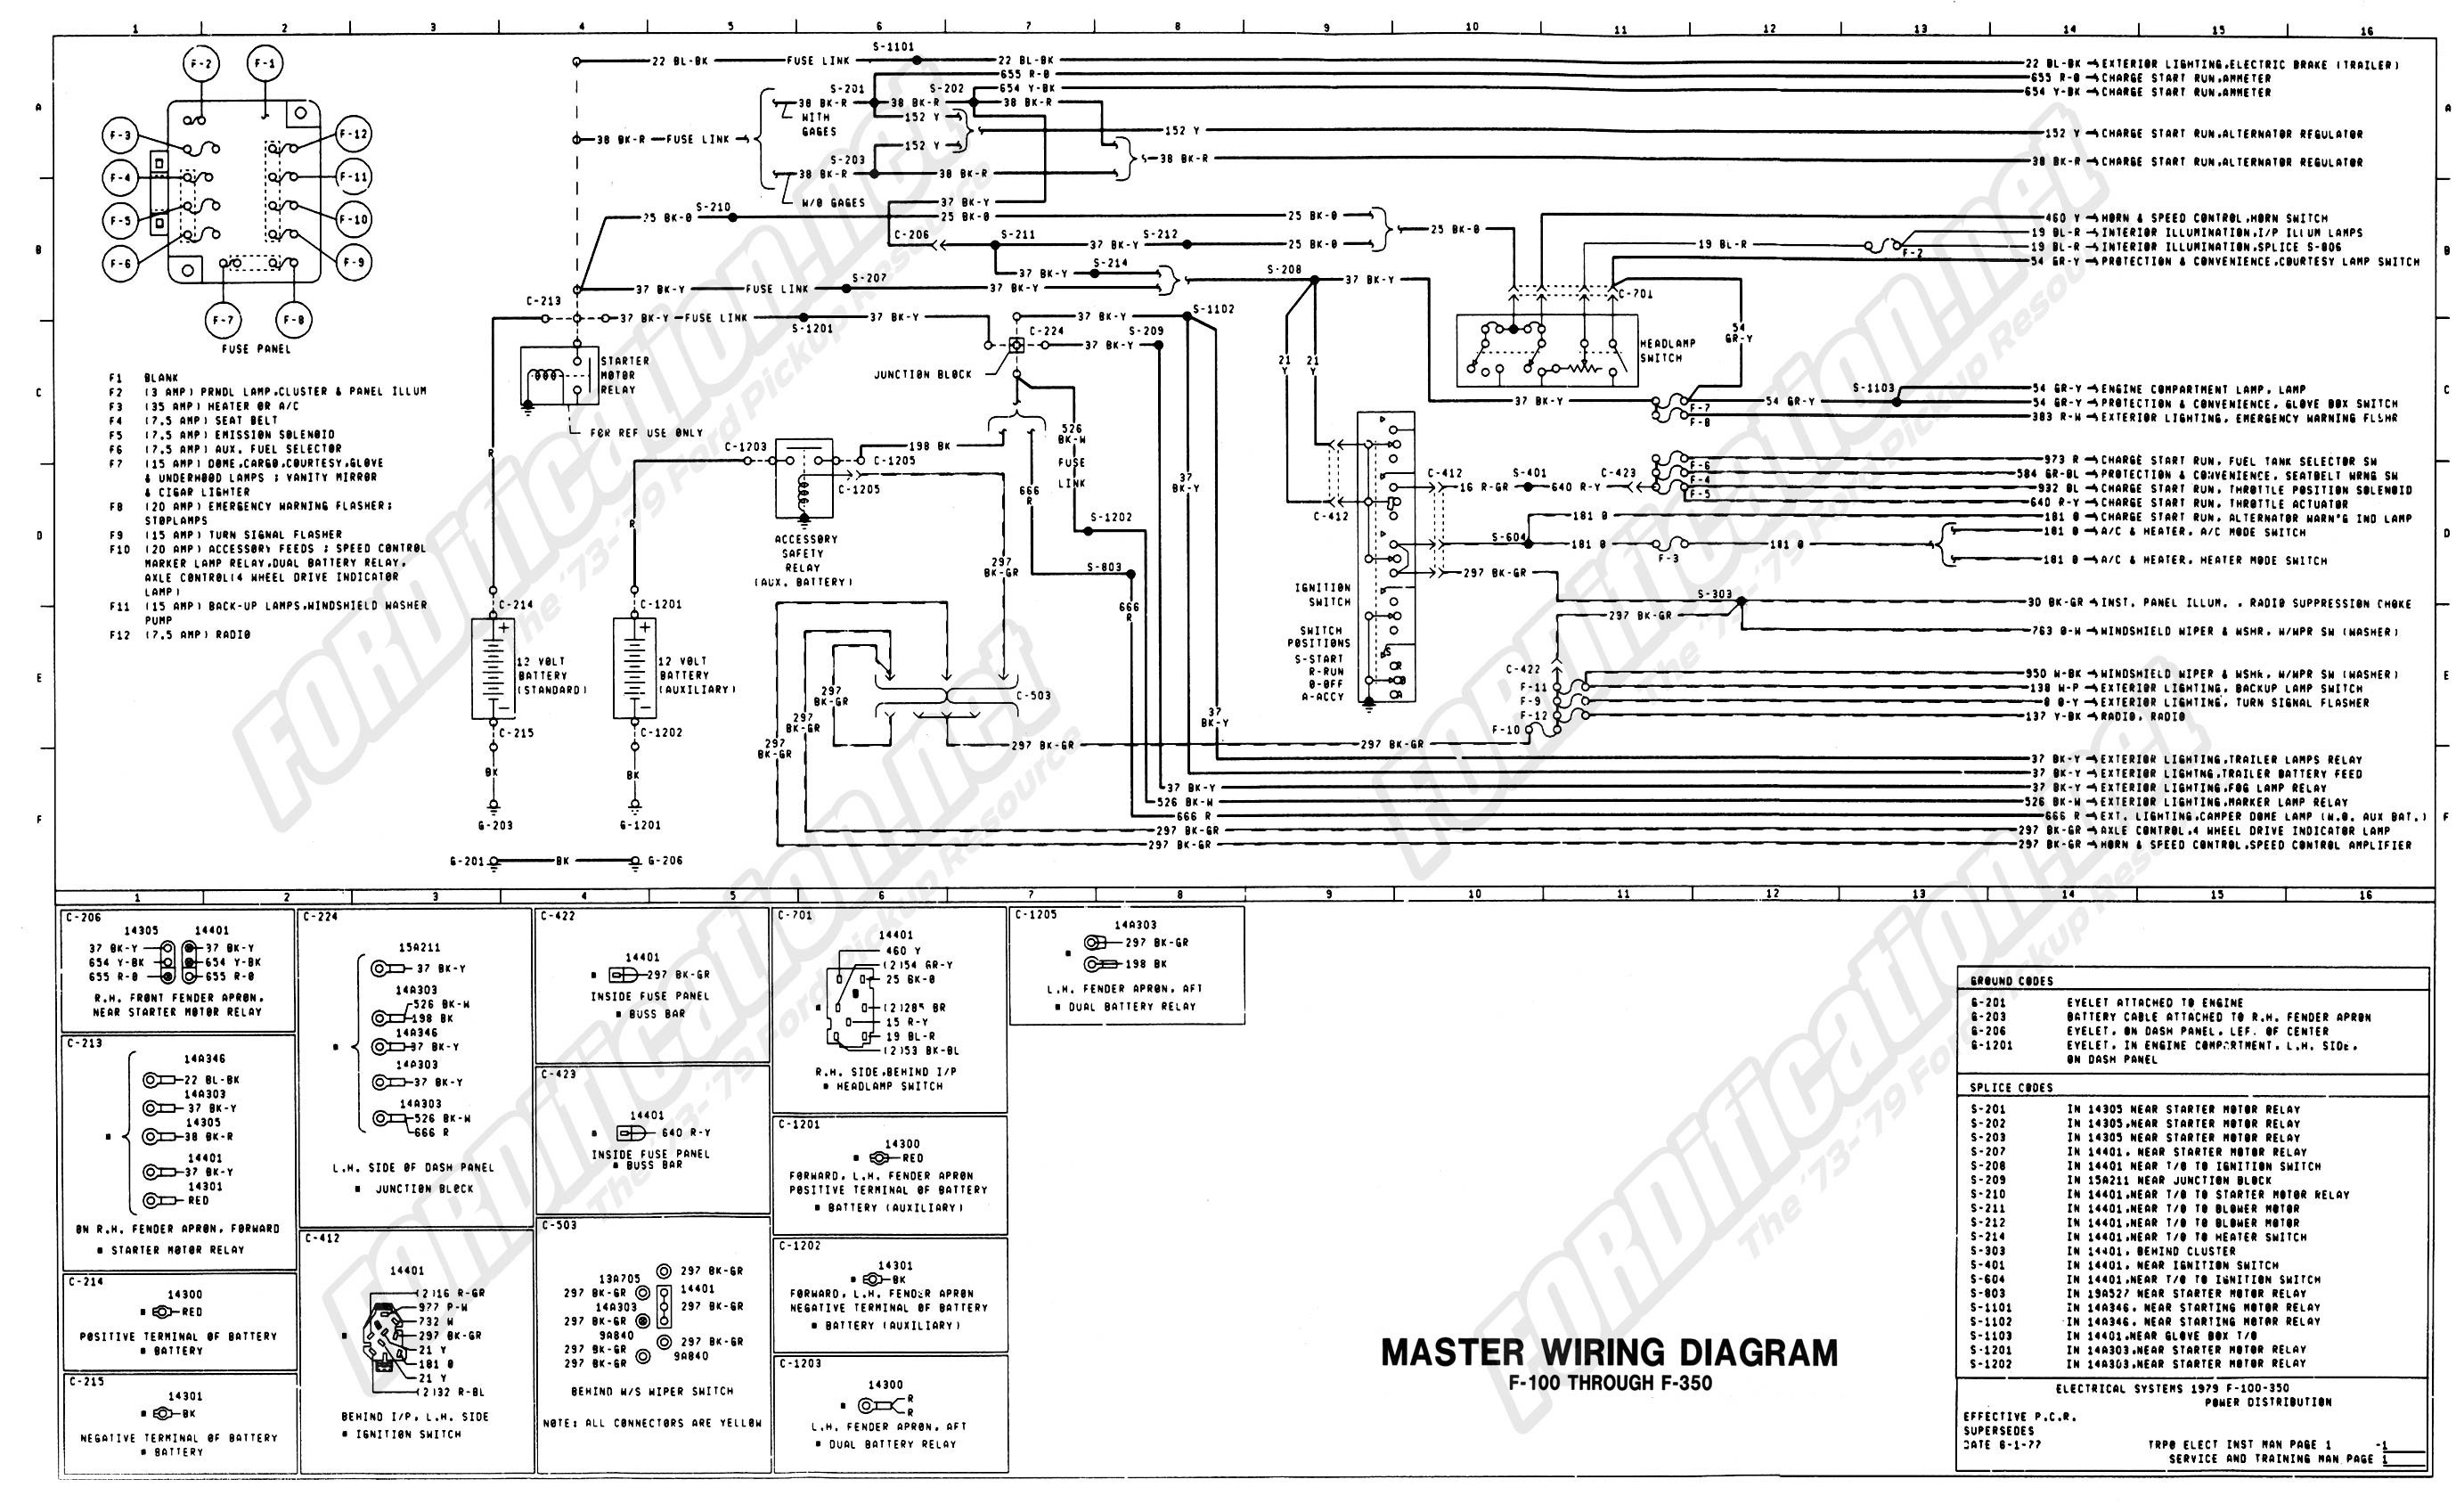 fuse box diagram 2006 le613 mack | issue-official wiring diagram table -  issue-official.rodowodowe.eu  rodowodowe.eu